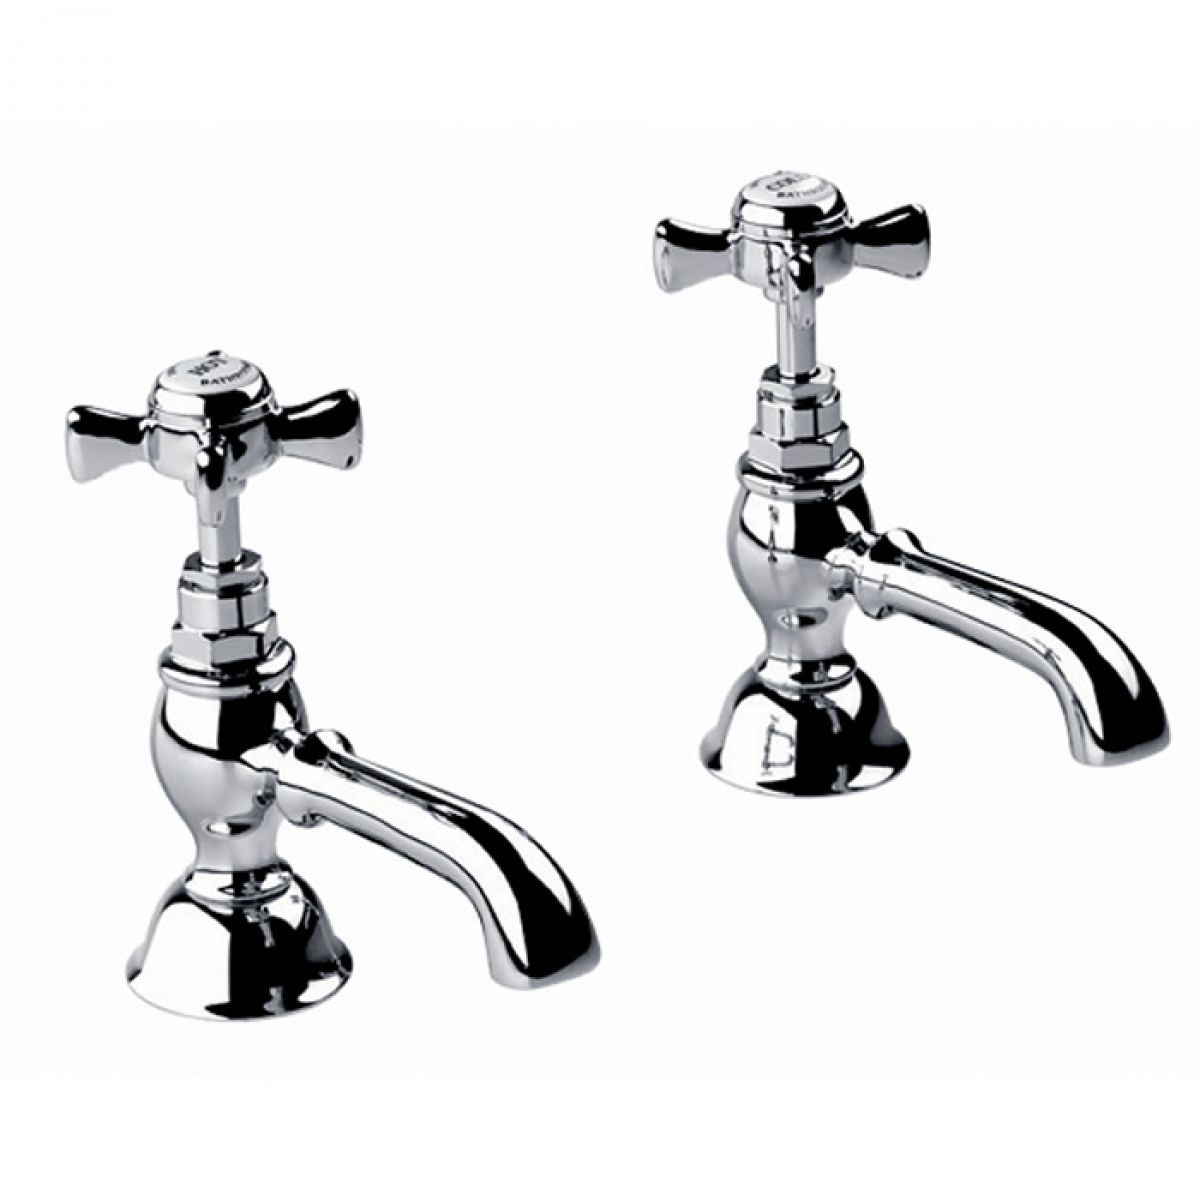 Imperial Edwardian Basin Pillar Taps : UK Bathrooms